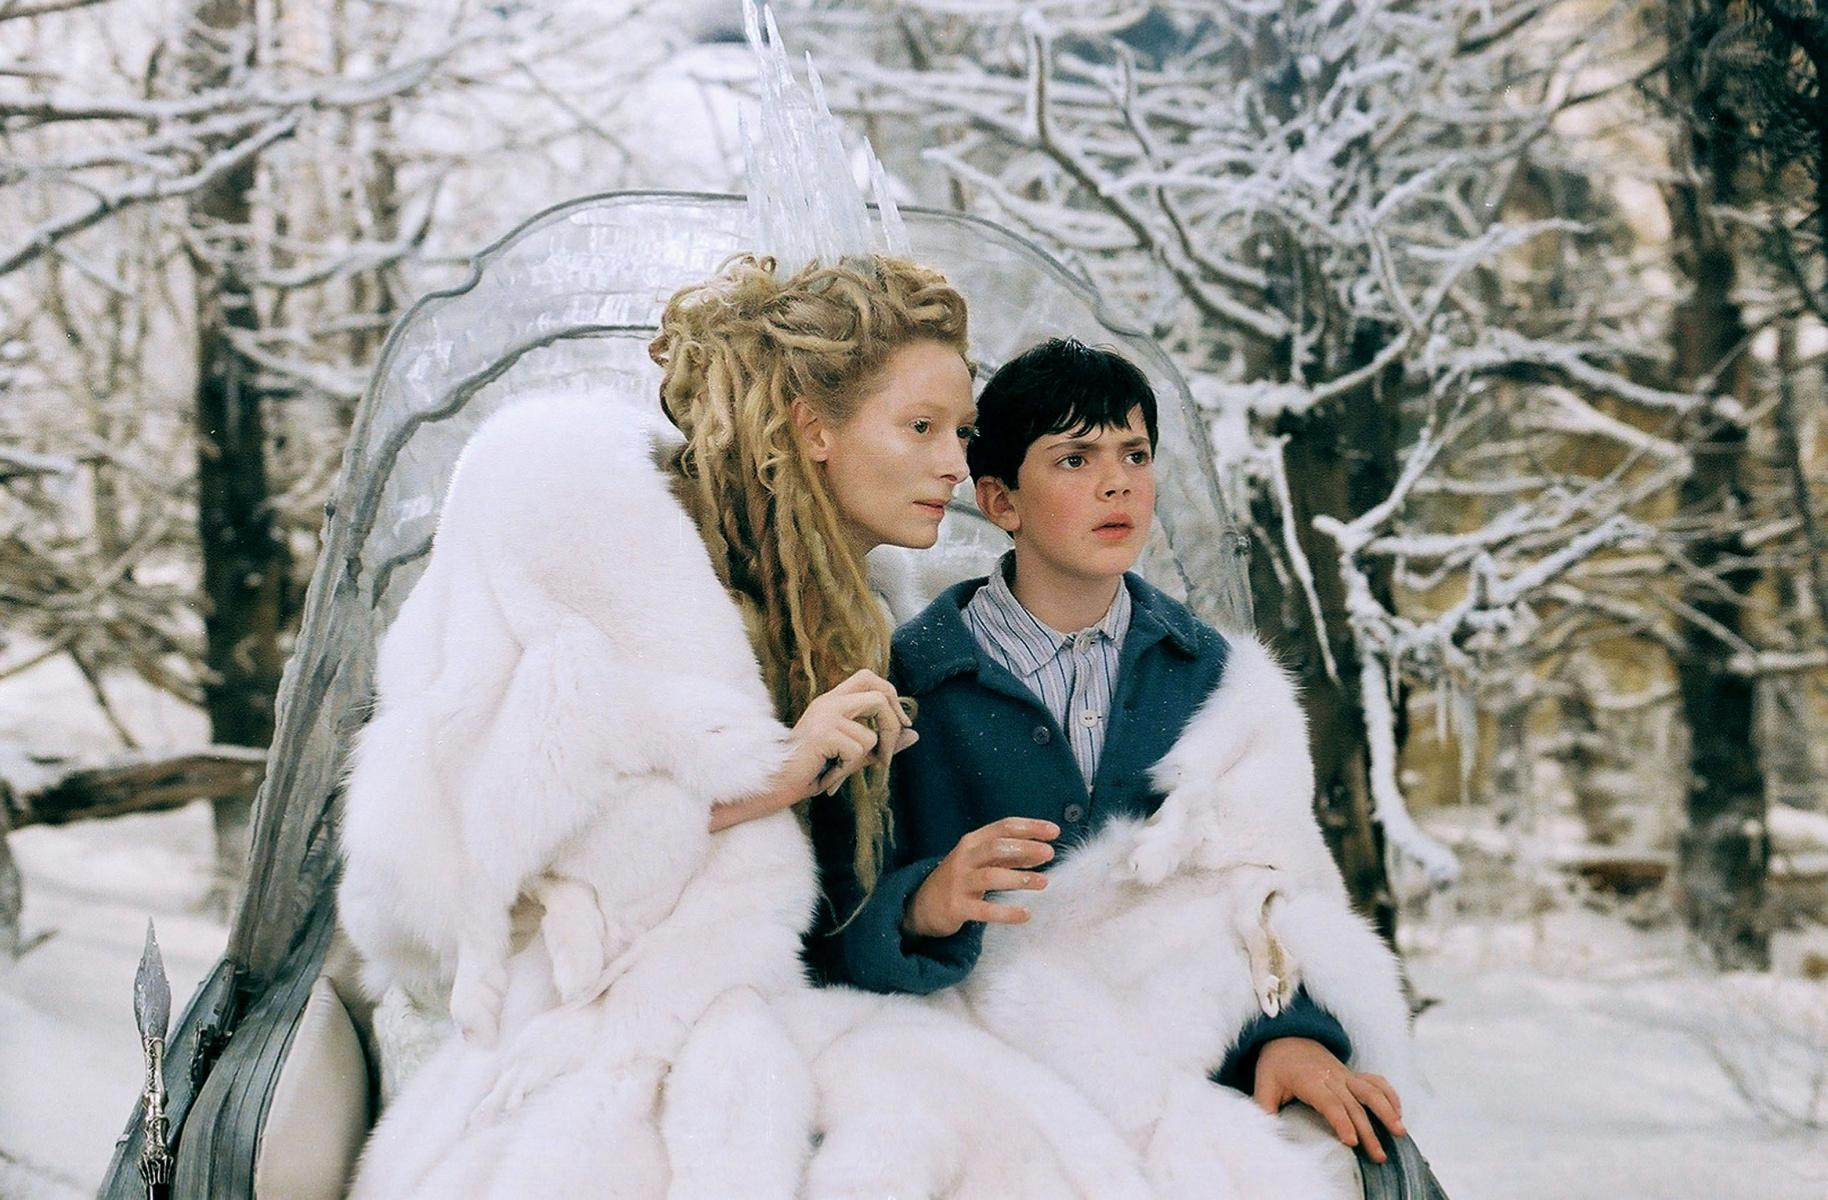 The White Witch (Tilda Swinton) tempts Edmund (Skandar Keynes) in The Chronicles of Narnia: The Lion, The Witch and the Wardrobe (2005)